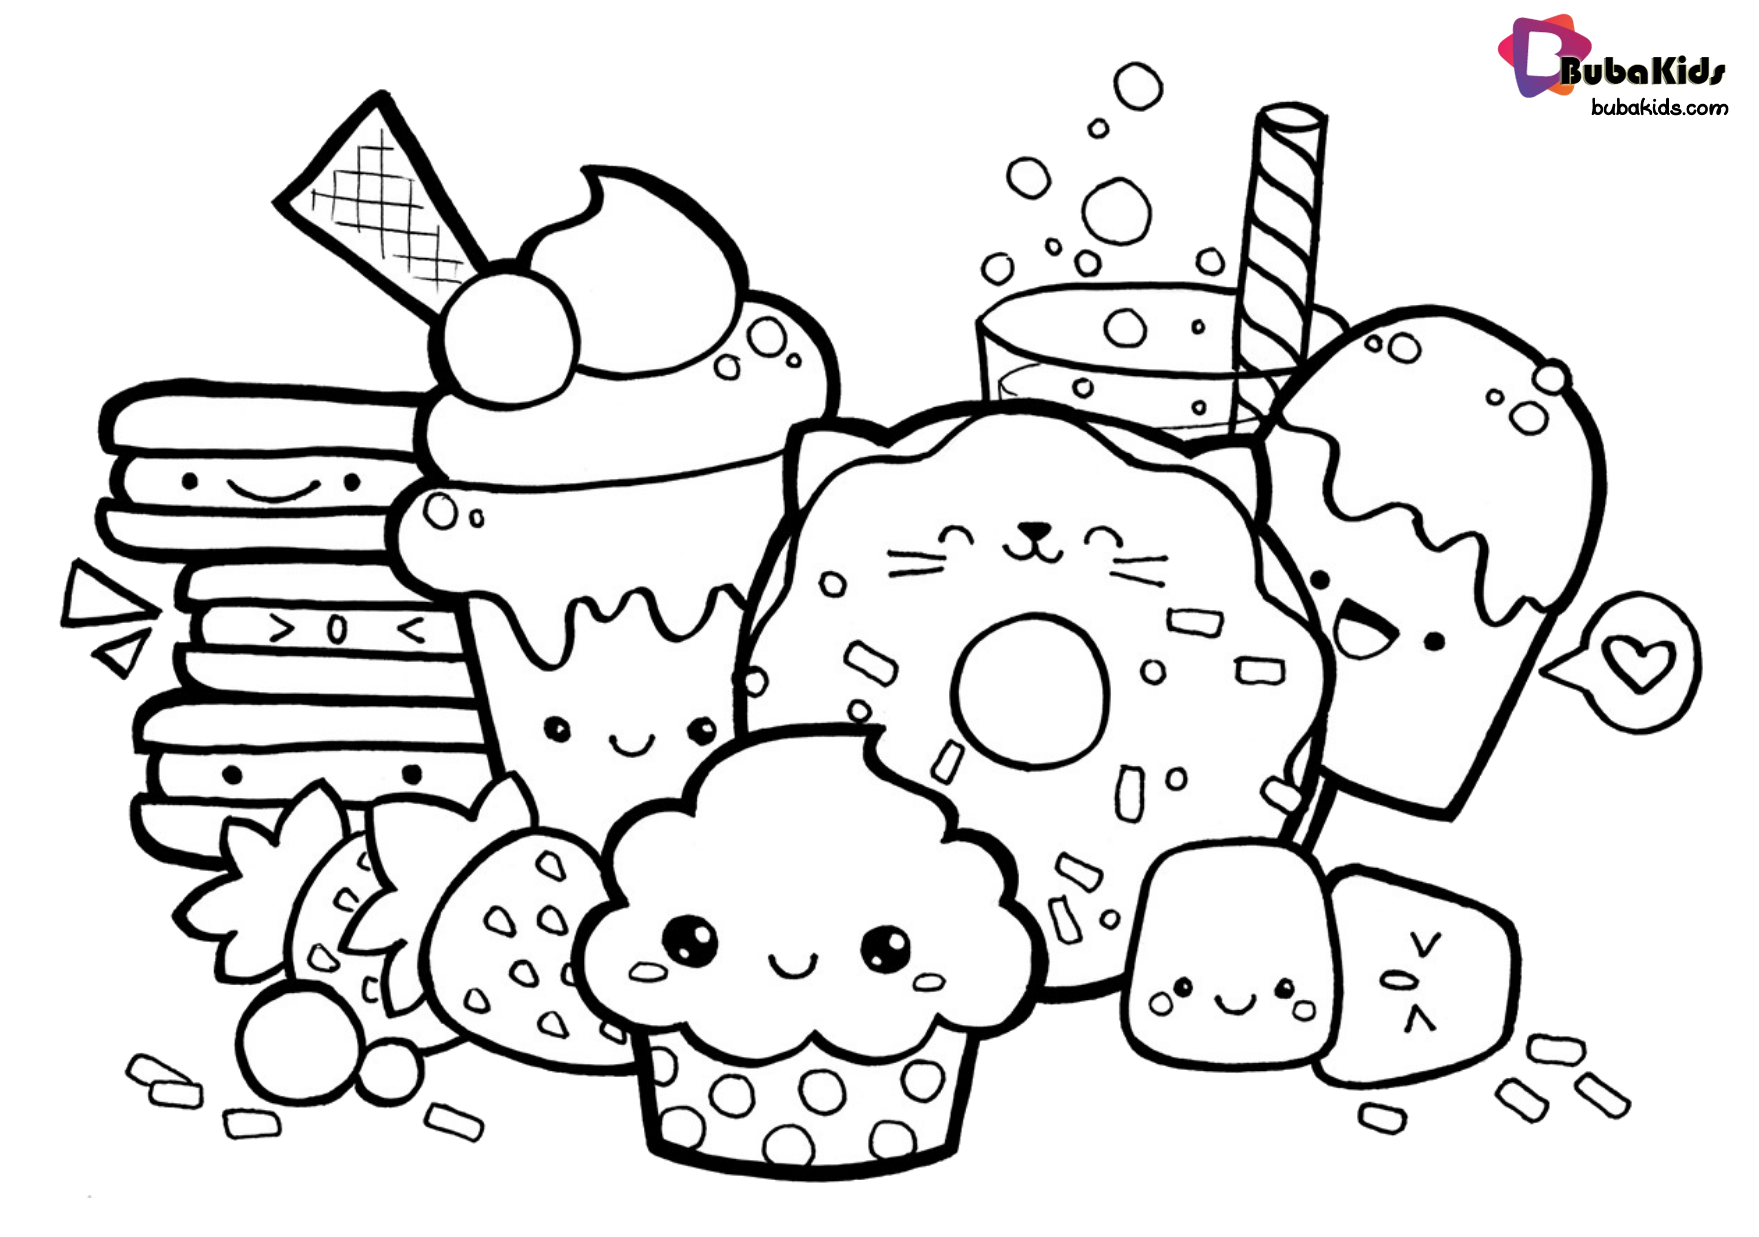 coloring food cute cute food coloring pages coloring pages to download and food cute coloring